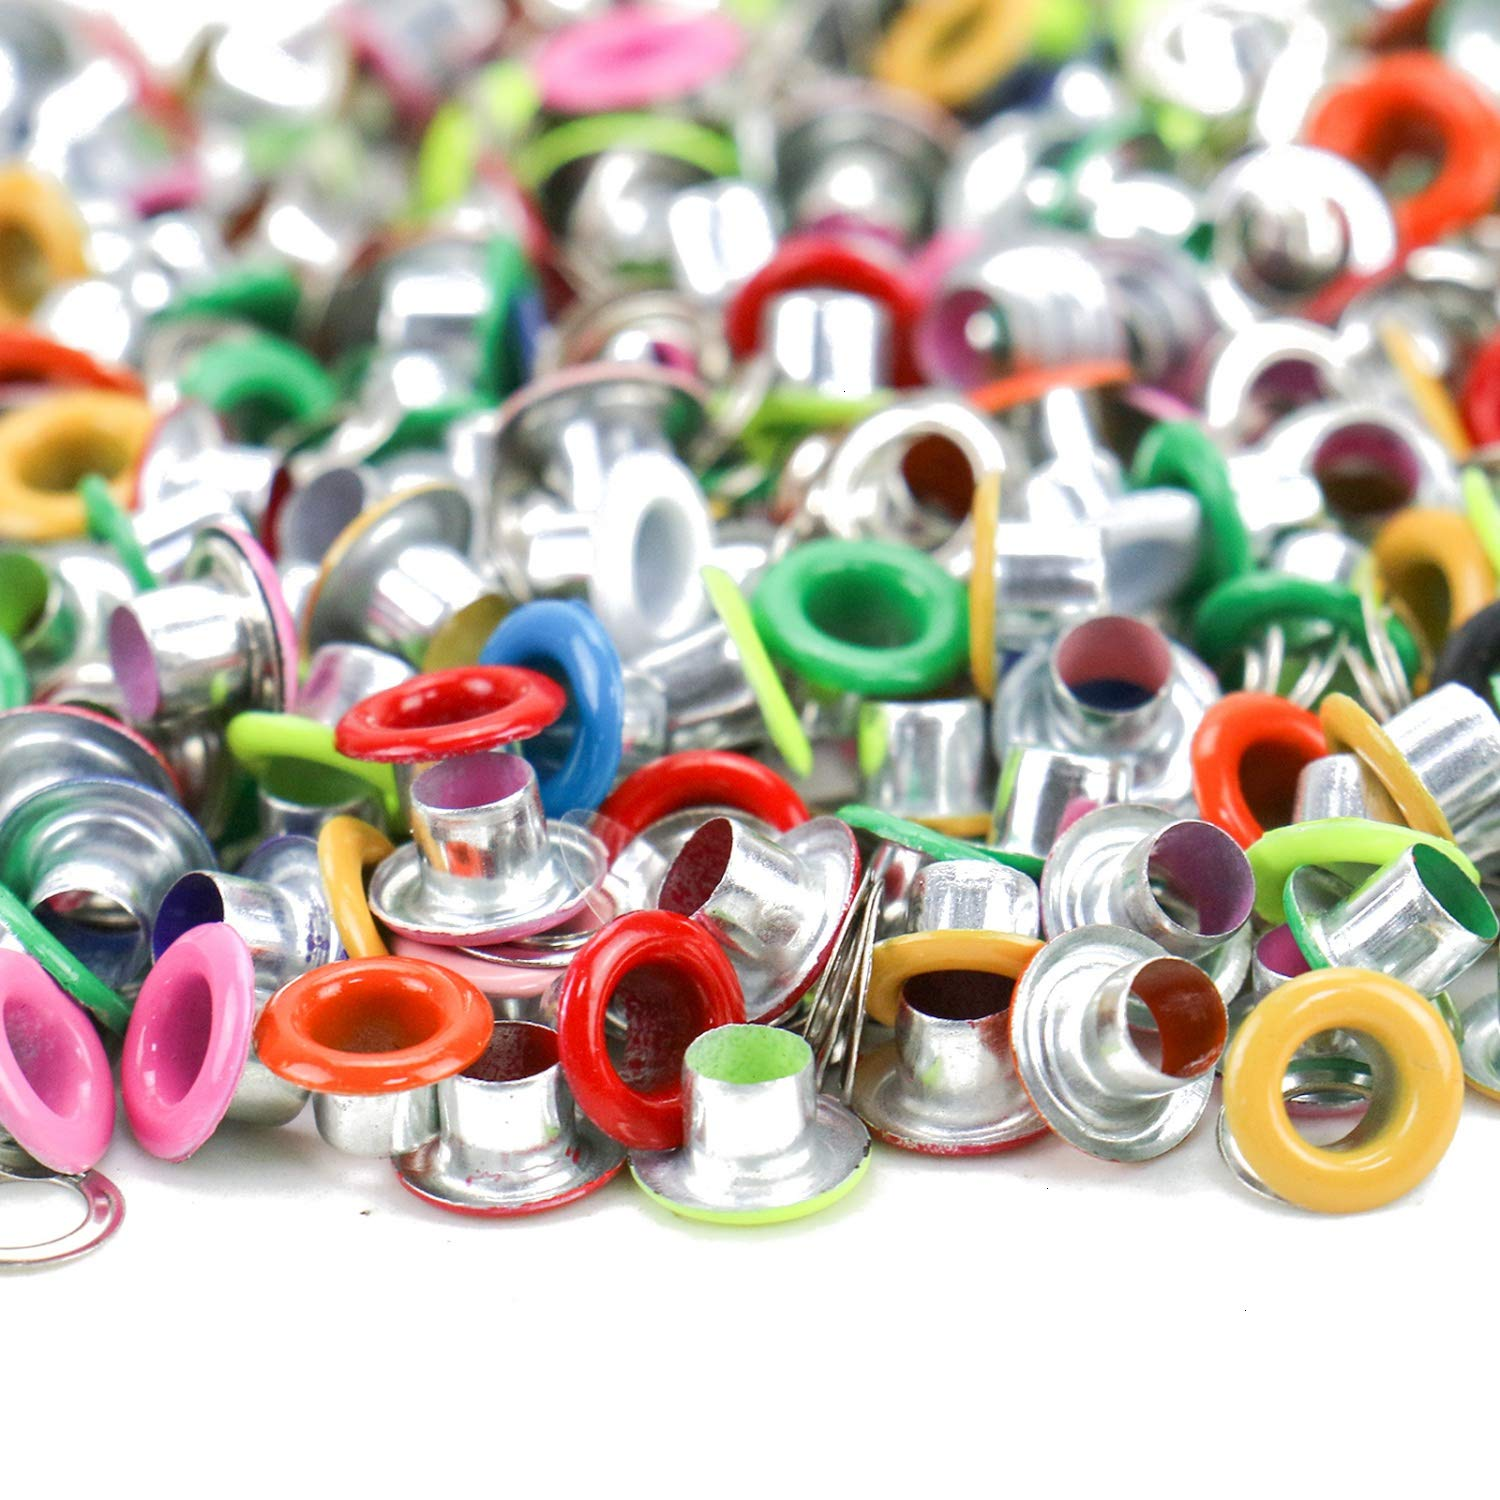 JETEHO 200 Pcs Colorful Metal Eyelets Grommets with Washer Eyelets Scrapbooking Supplies for Leather Clothing Shoes